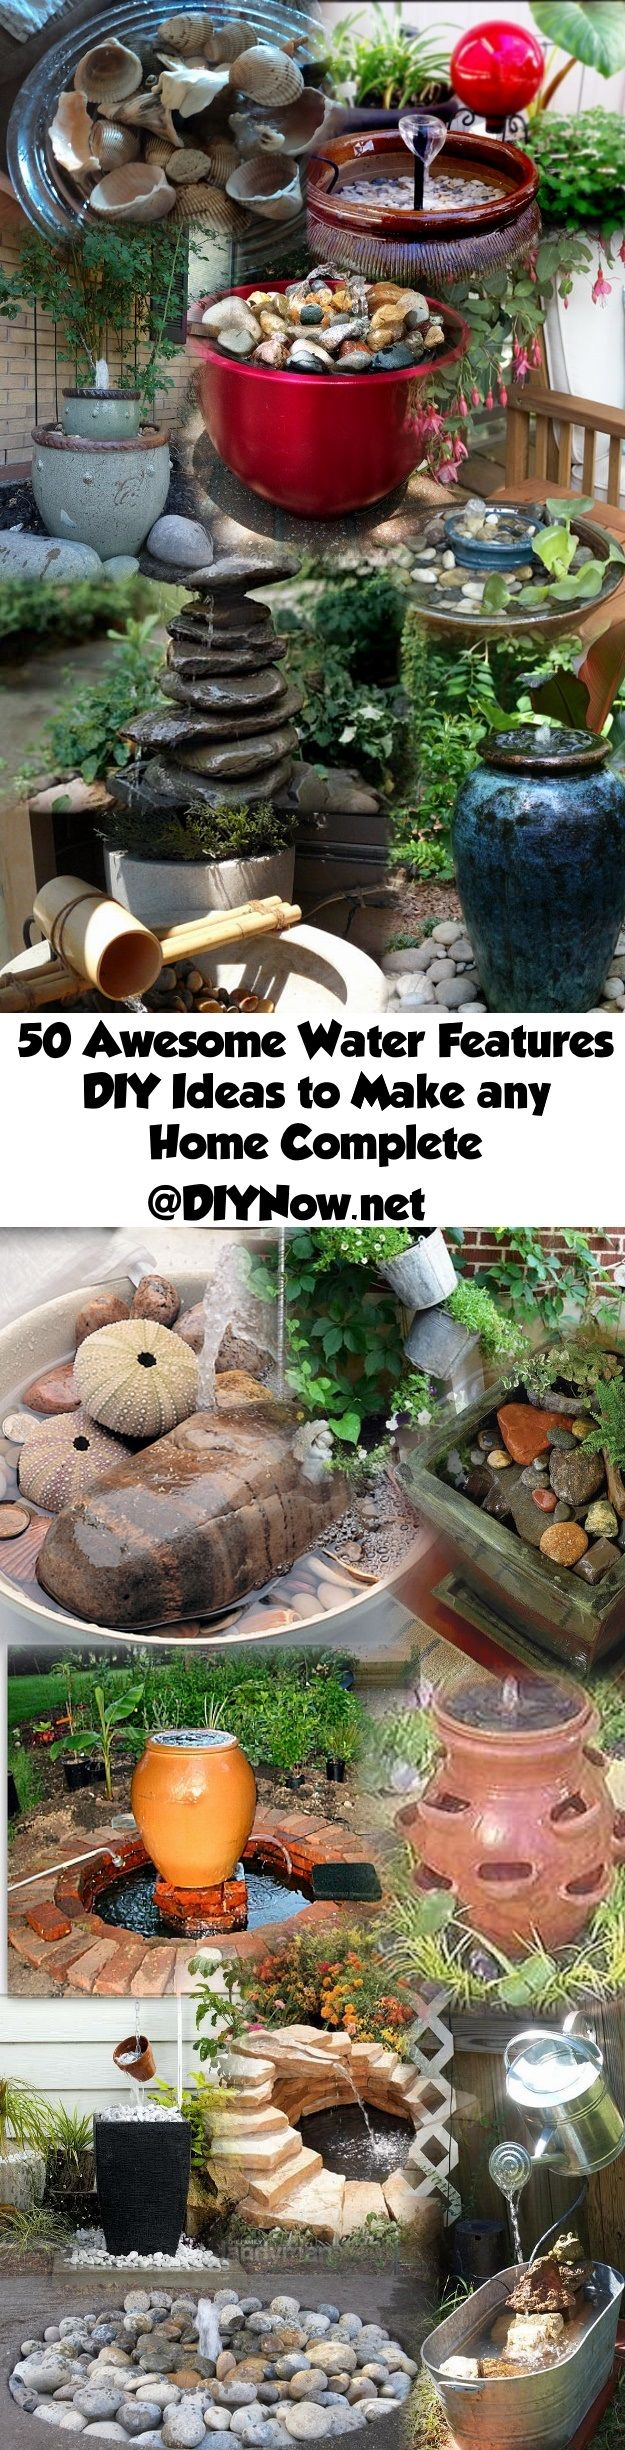 50 Awesome Water Features DIY Ideas to Make any Home Complete